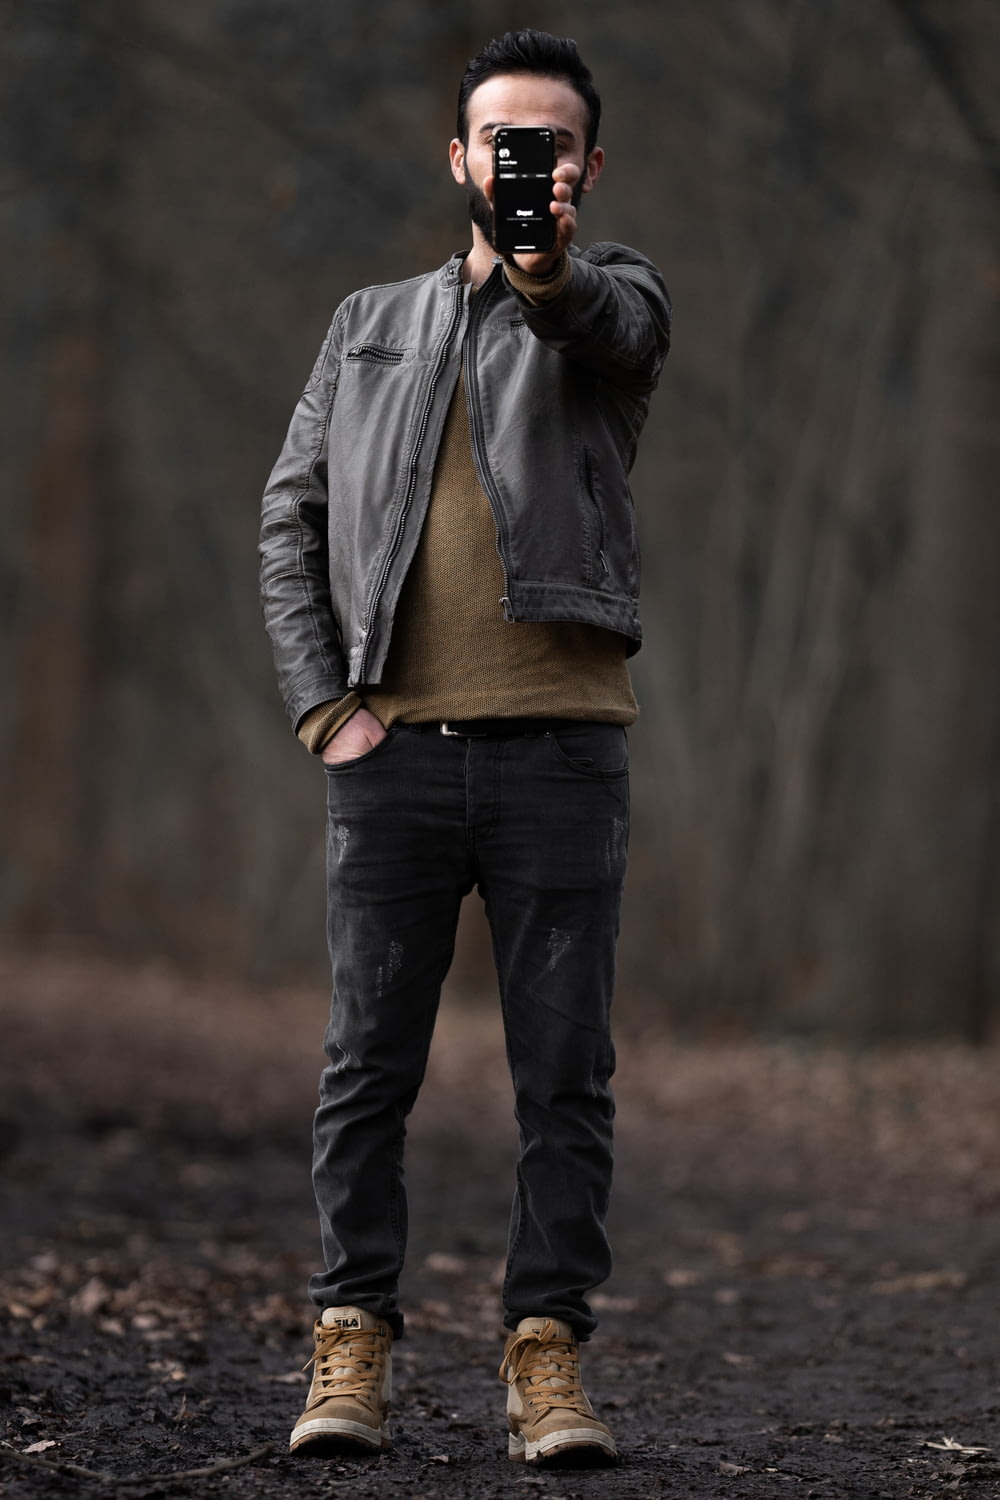 man in gray jacket and blue denim jeans standing on brown field during daytime